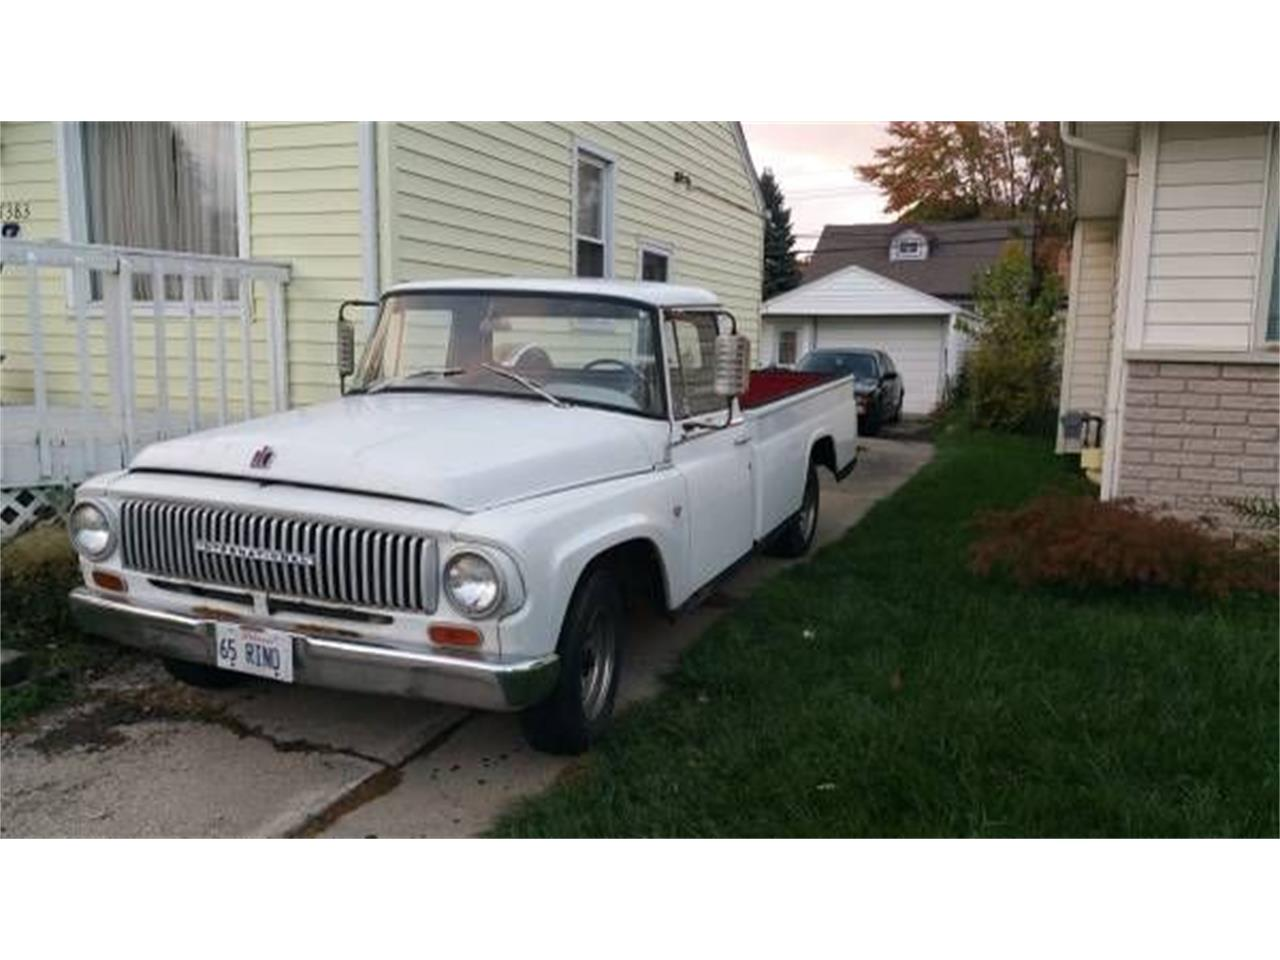 For Sale: 1965 International Pickup in Cadillac, Michigan